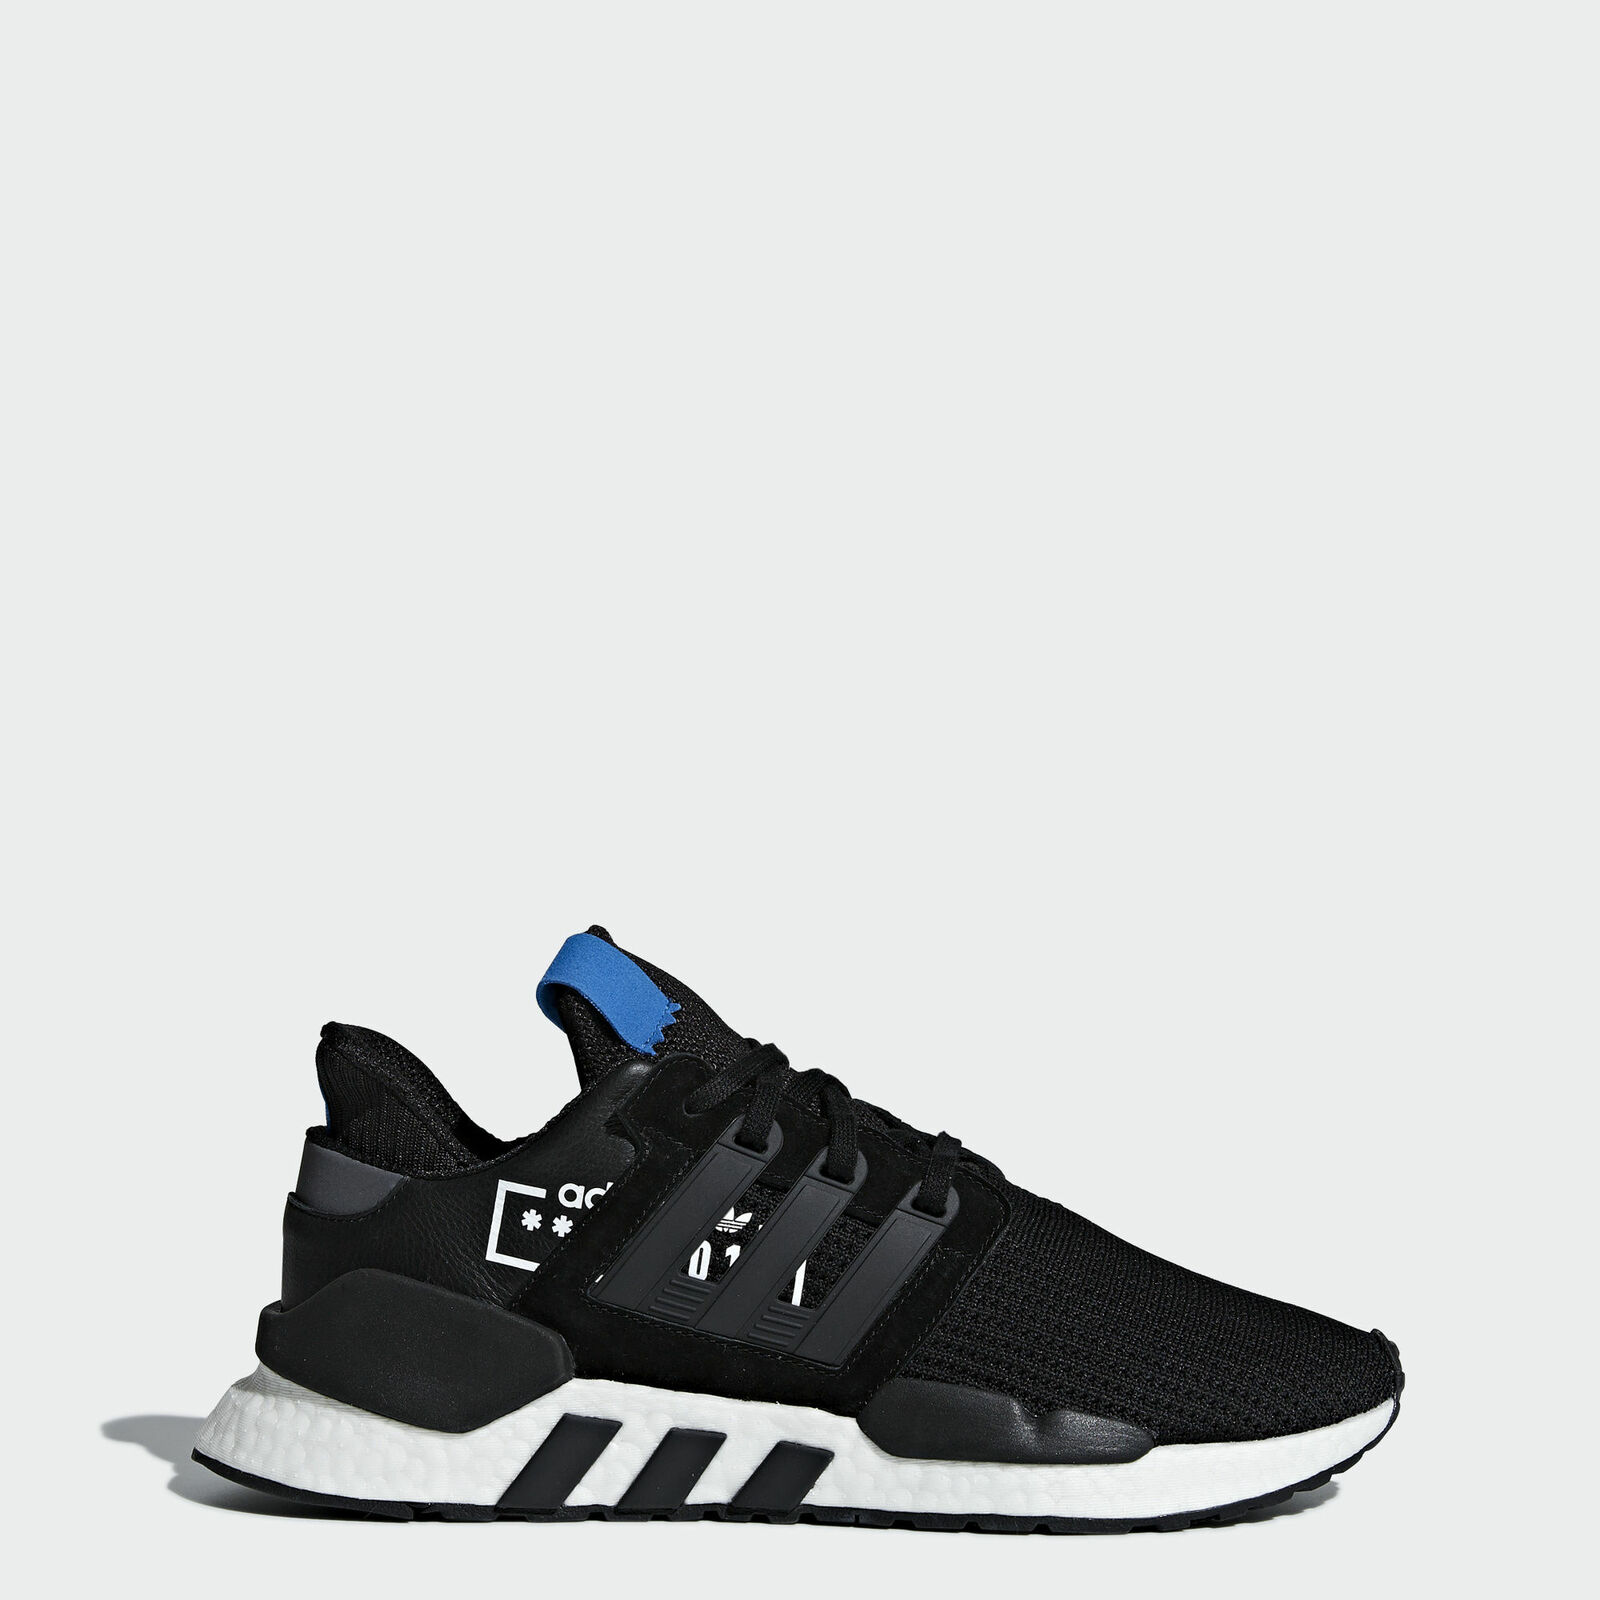 online store b57d7 3bf70 Adidas EQT Support 91 18 shoes Men s. NIKE ...